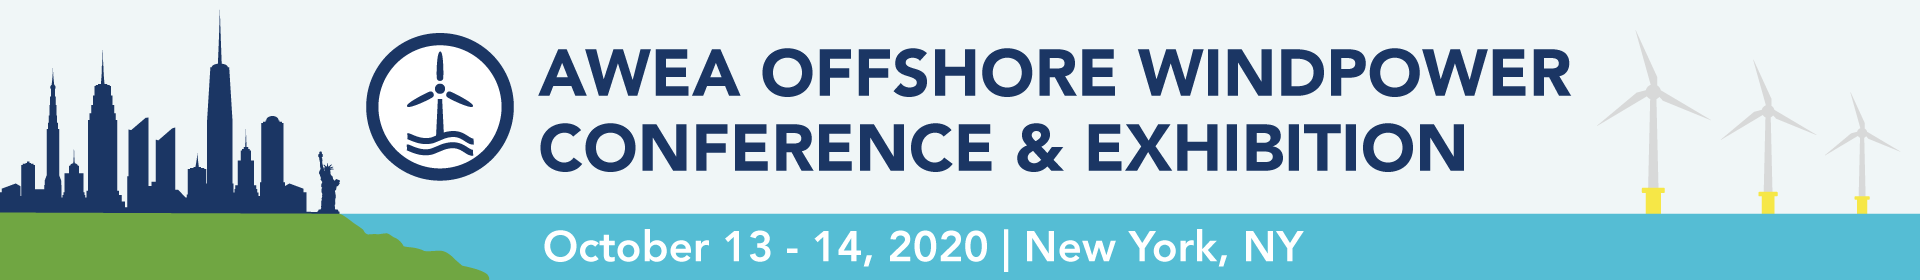 AWEA Offshore WINDPOWER Conference and Exhibition 2020 Event Banner